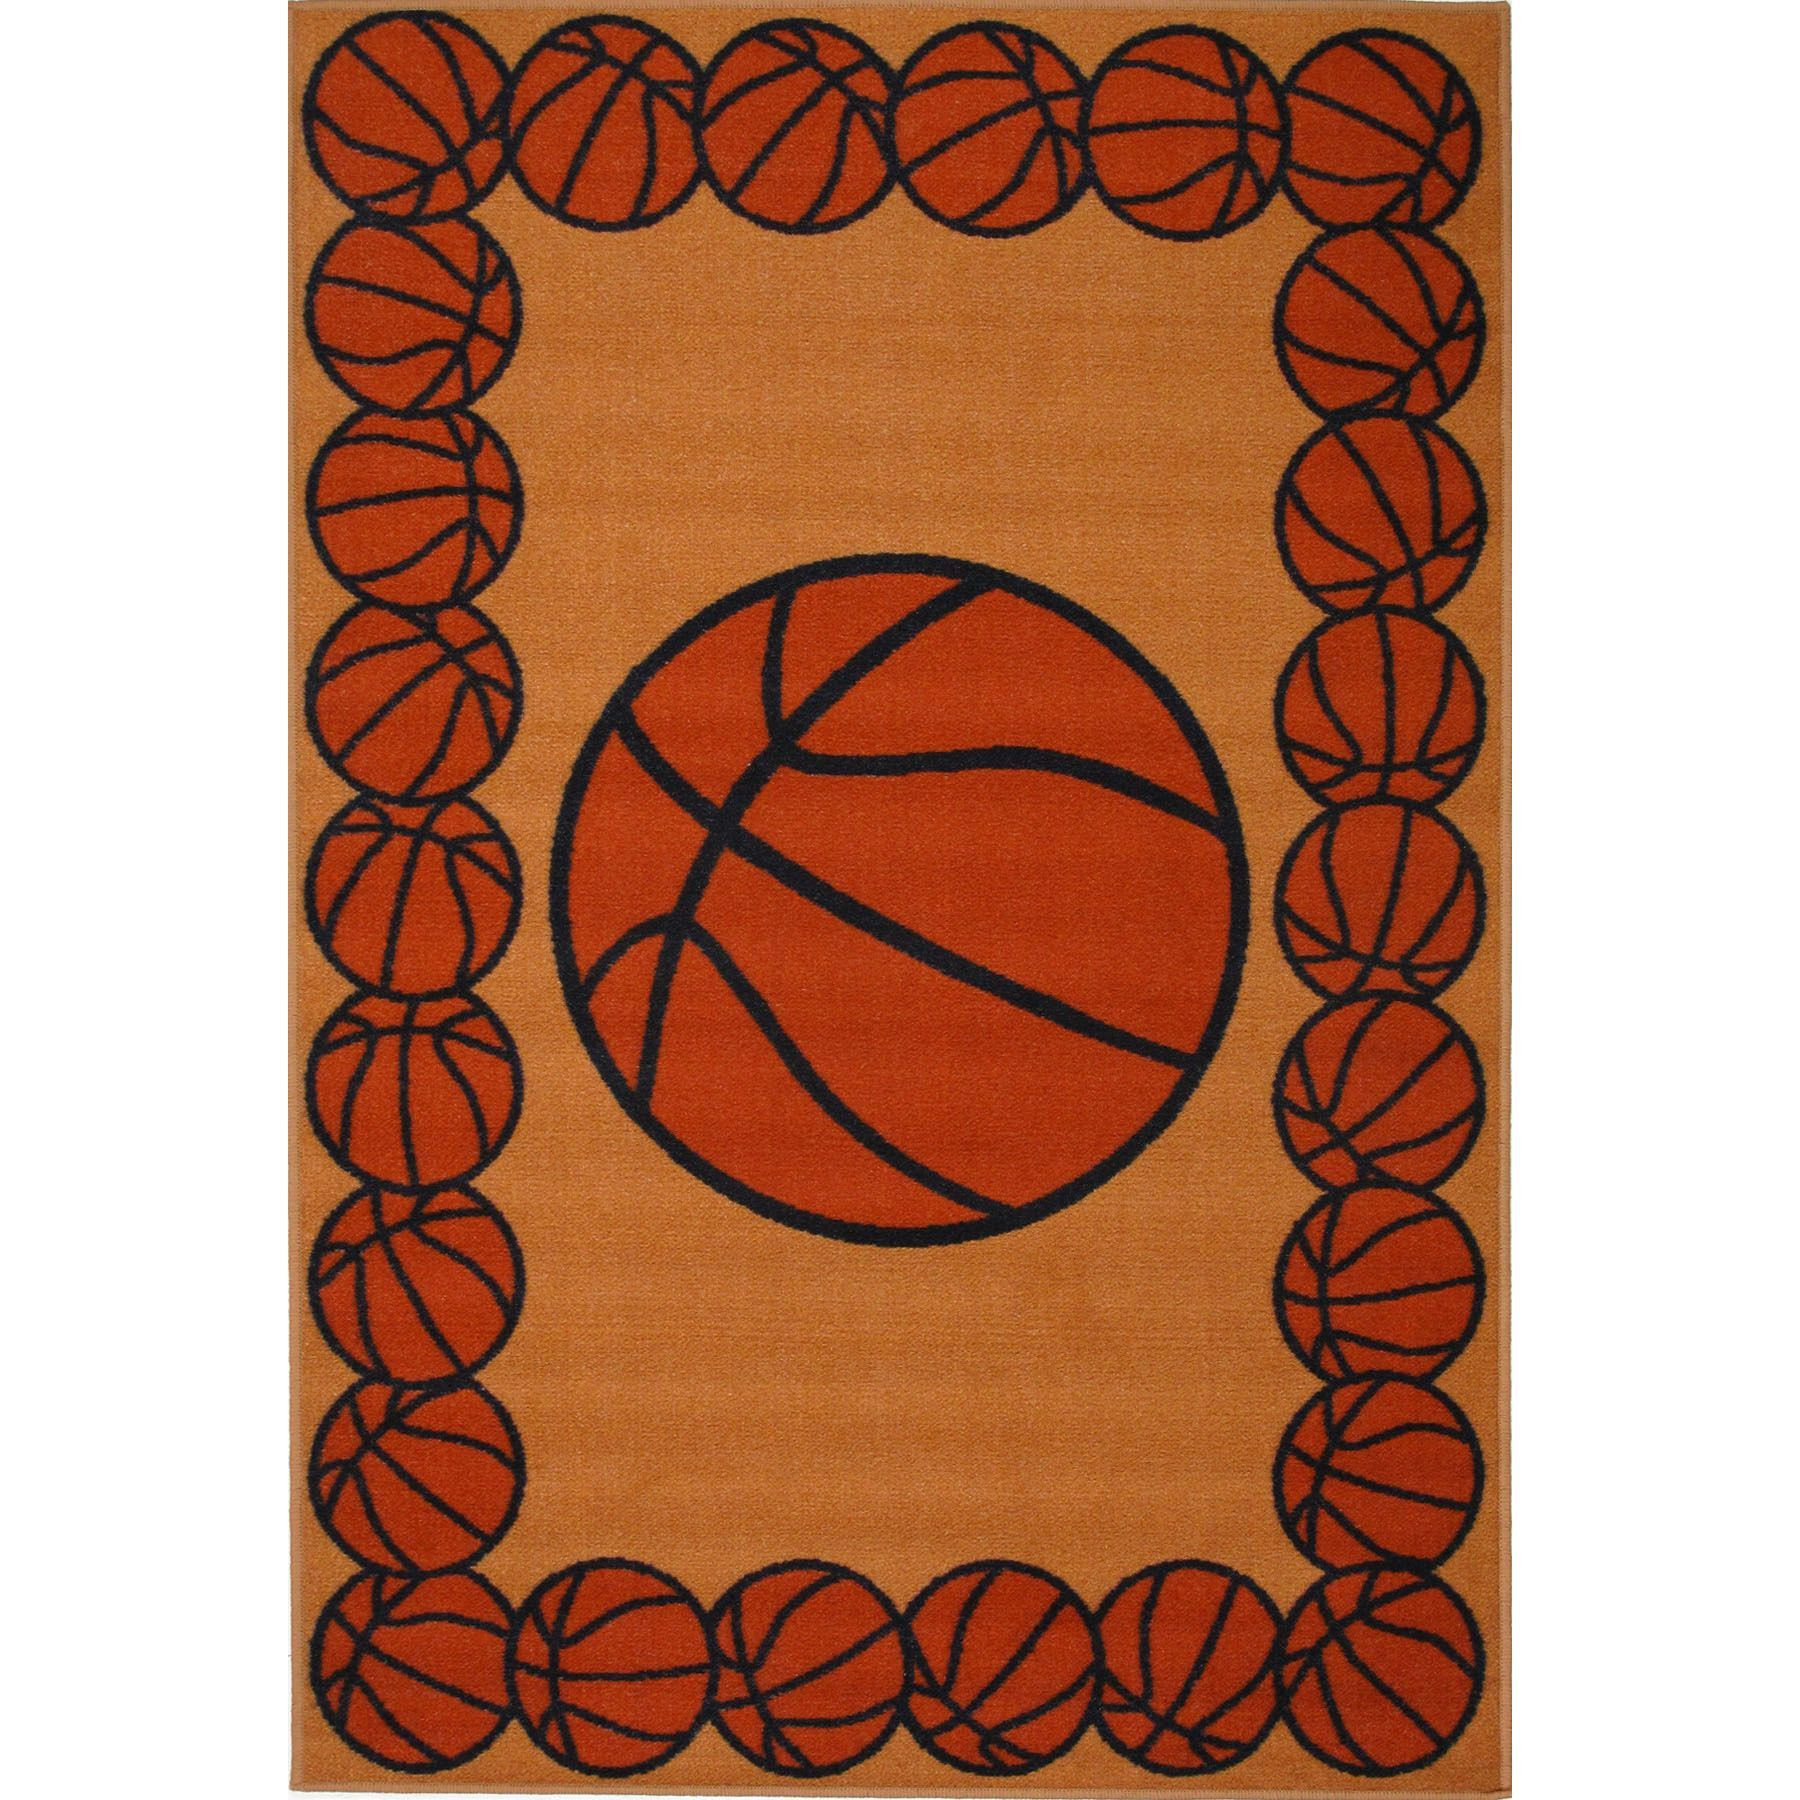 Basketball Time Accent Rug